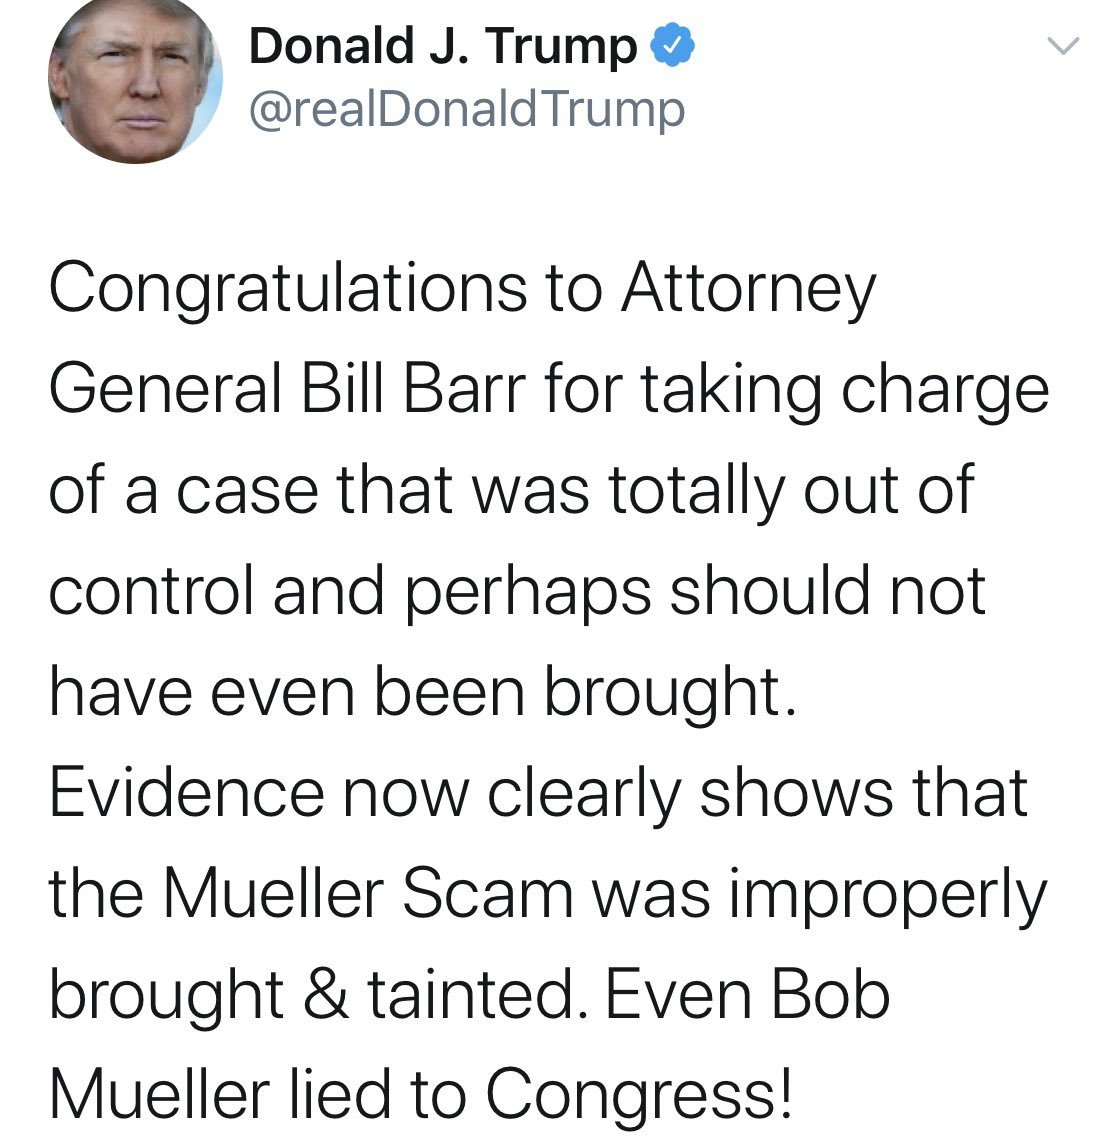 Just in case there was any sliver of doubt that Barr was doing what Trump wanted - there's a tweet.